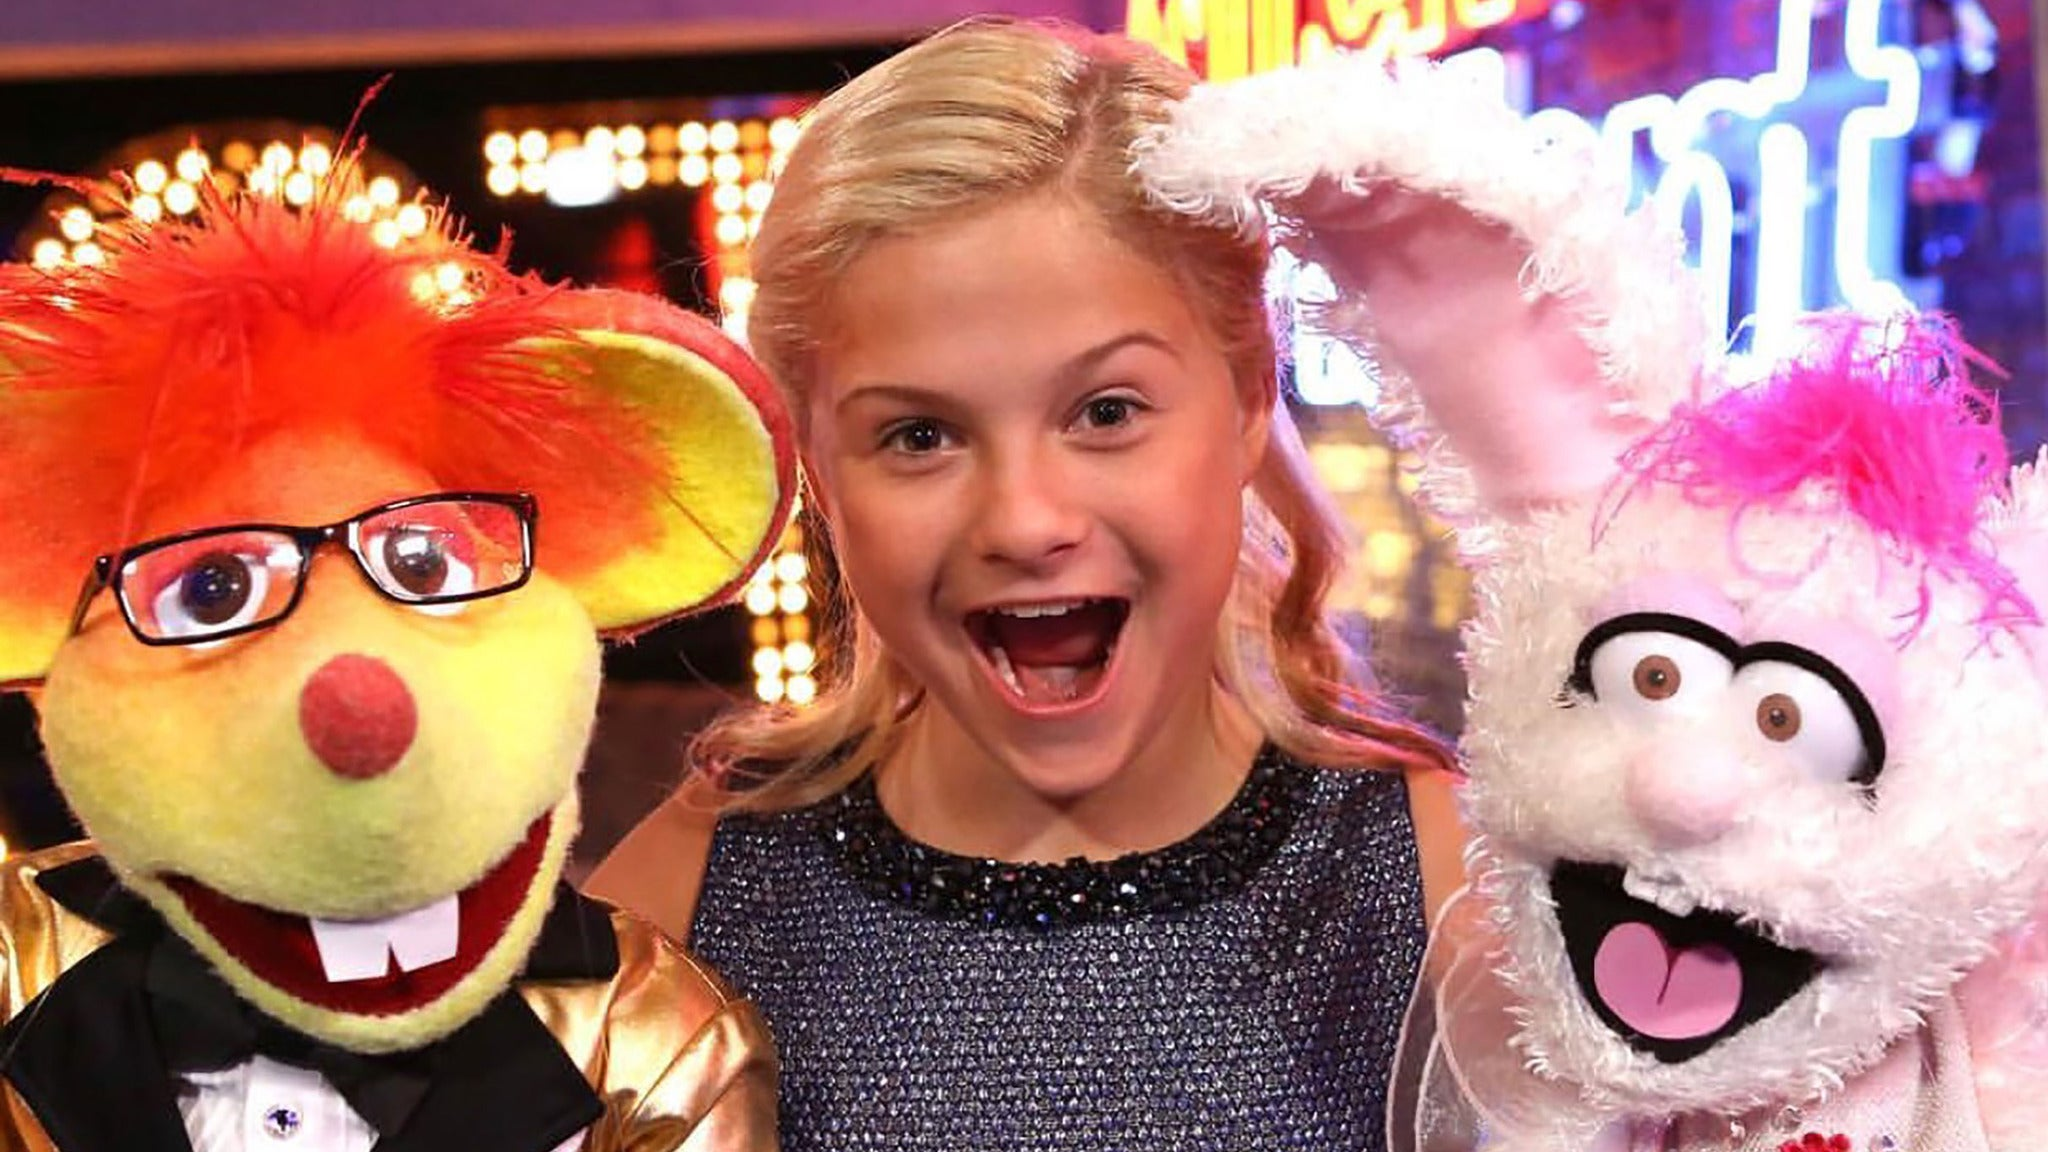 Darci Lynne at Jackson County Expo